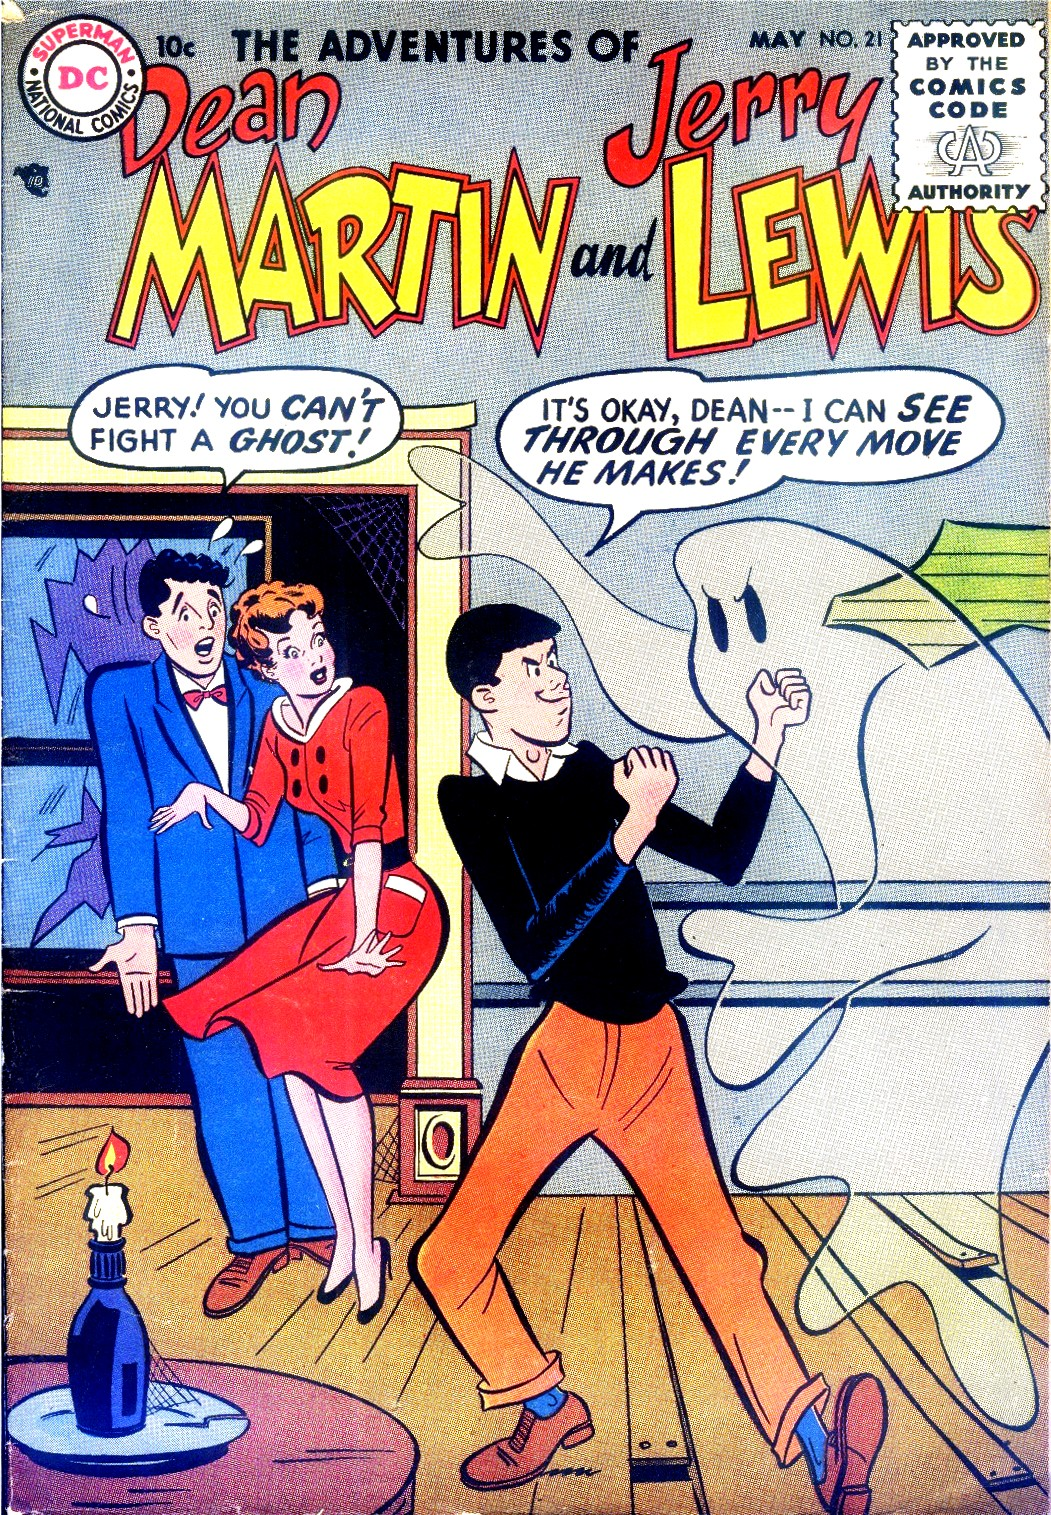 The Adventures of Dean Martin and Jerry Lewis 21 Page 1